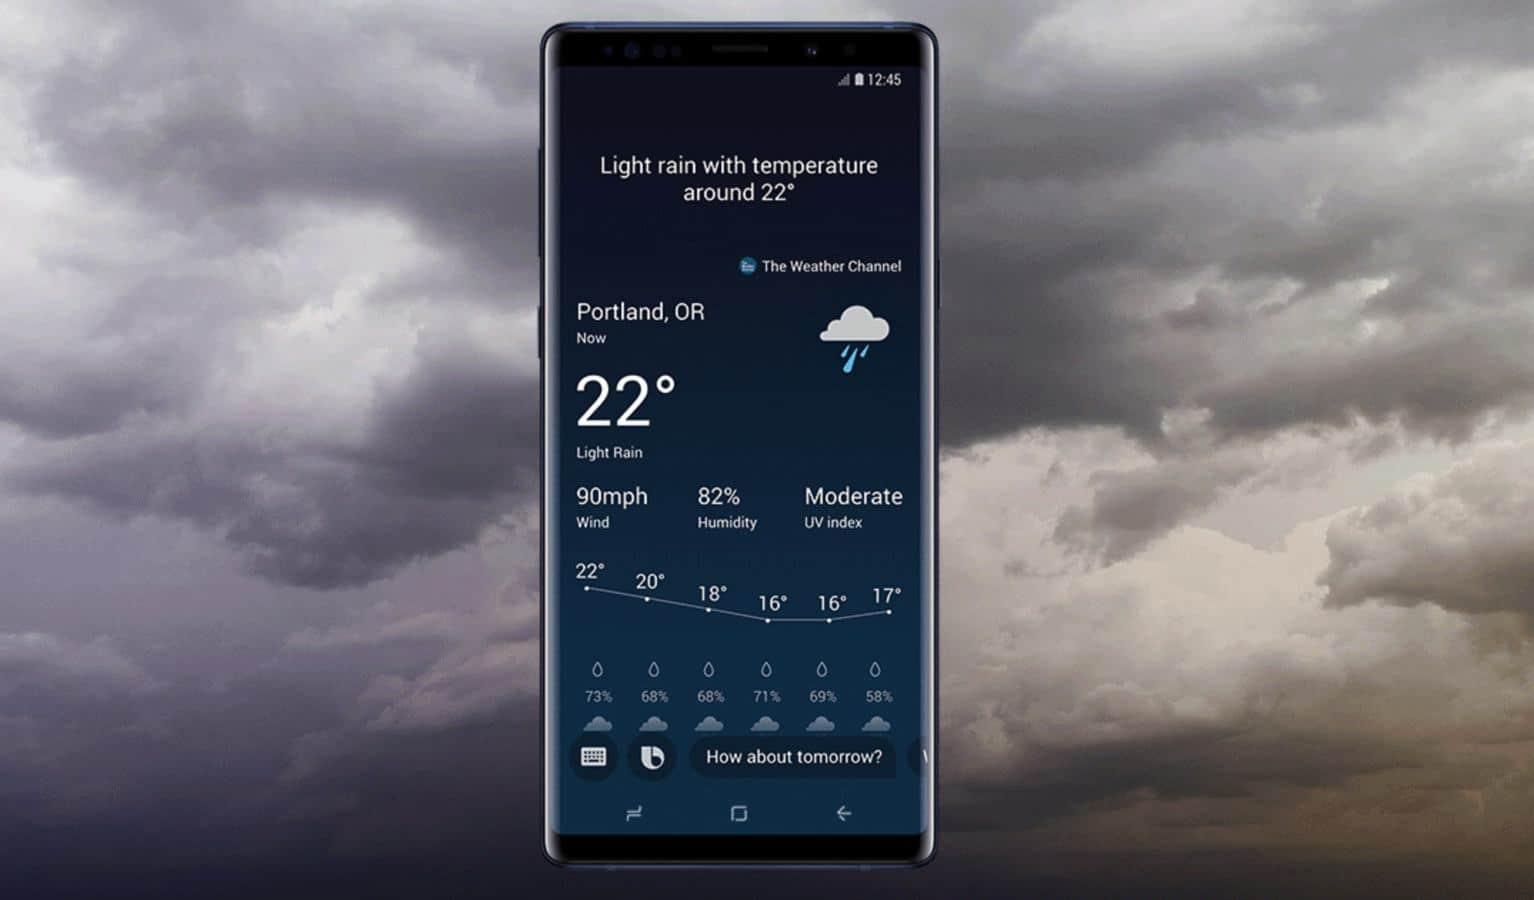 samsung bixby displaying the weather in Portland